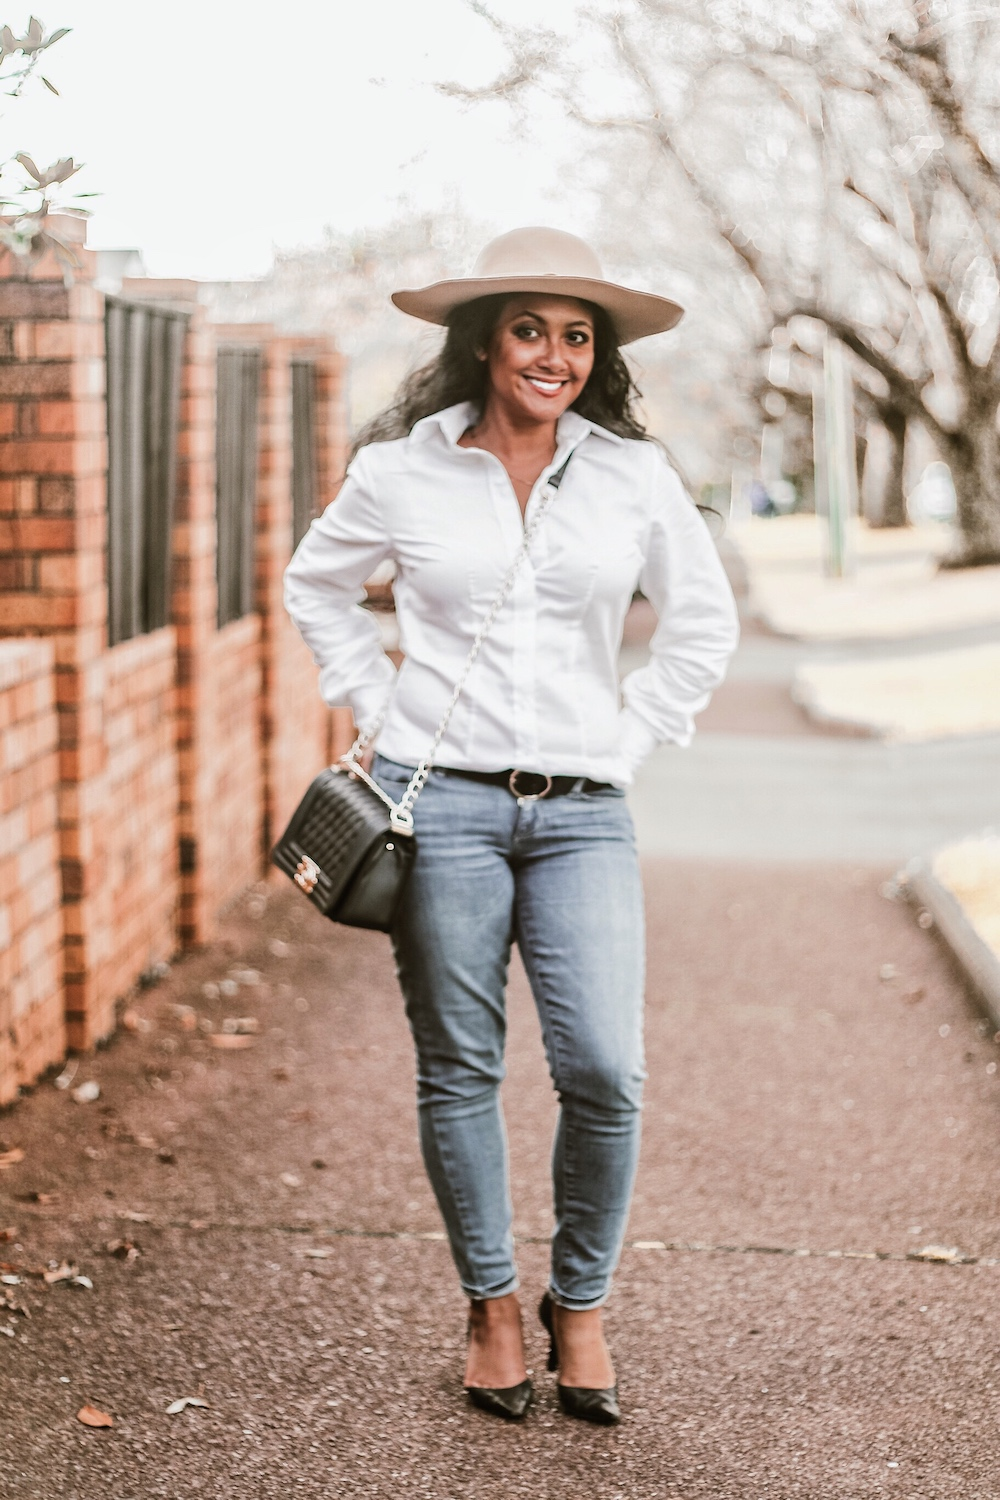 Parisian Style Best White Shirts For Women French Style Classic Women's White Shirt Paris Chic Style Button Down Long Sleeve Shirt White Skinny Jeans Auckland New Zealand StreetStyle Wear